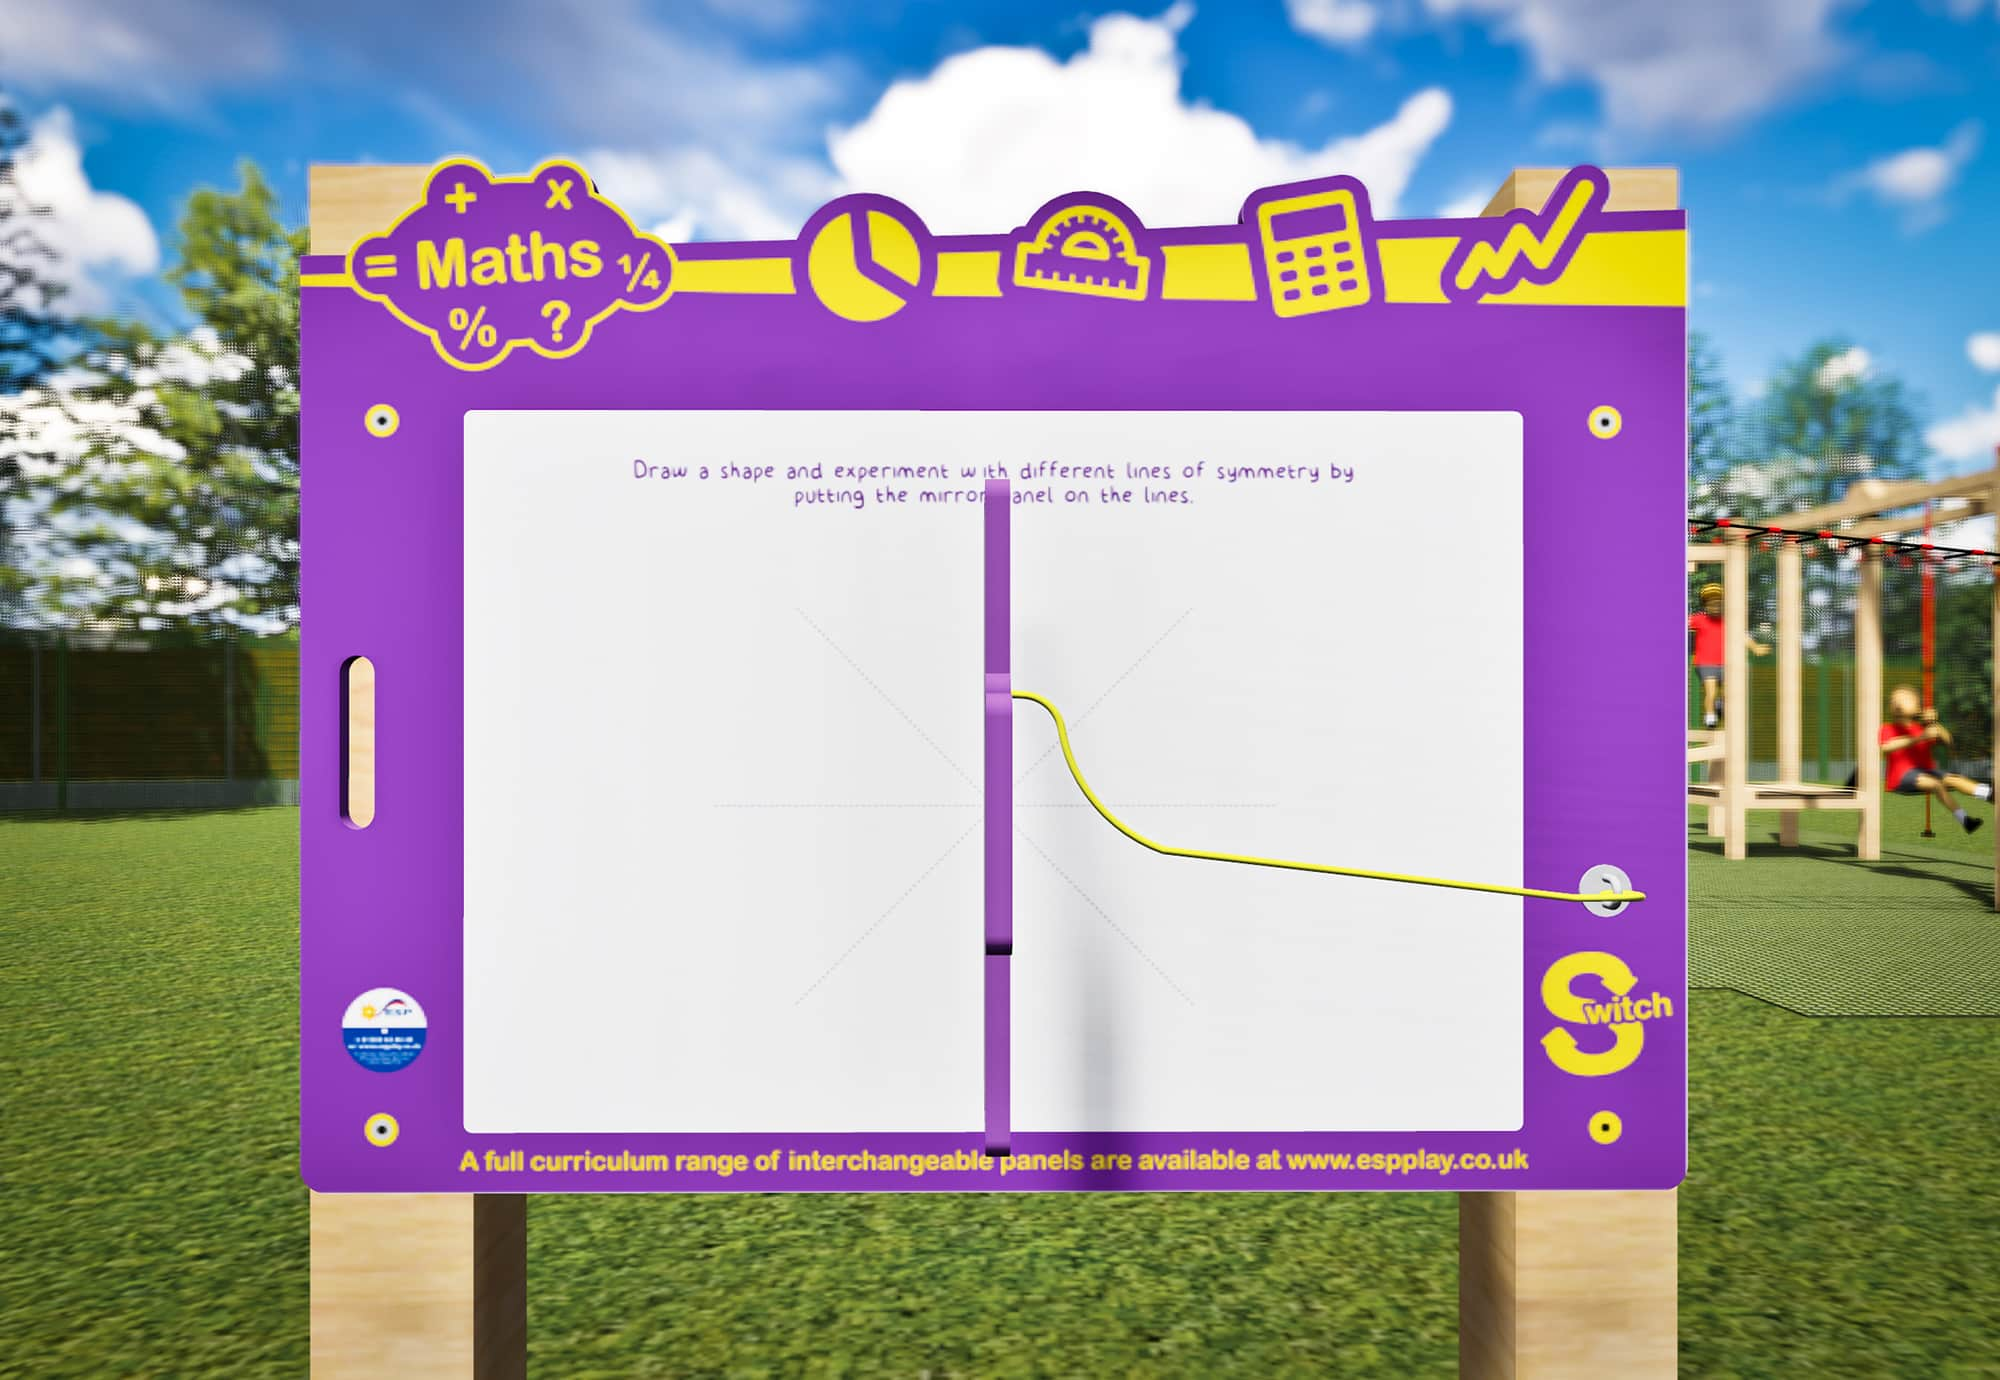 Drawing Lines Of Symmetry Games : Sw math01 switch symmetry board esp school playground equipment